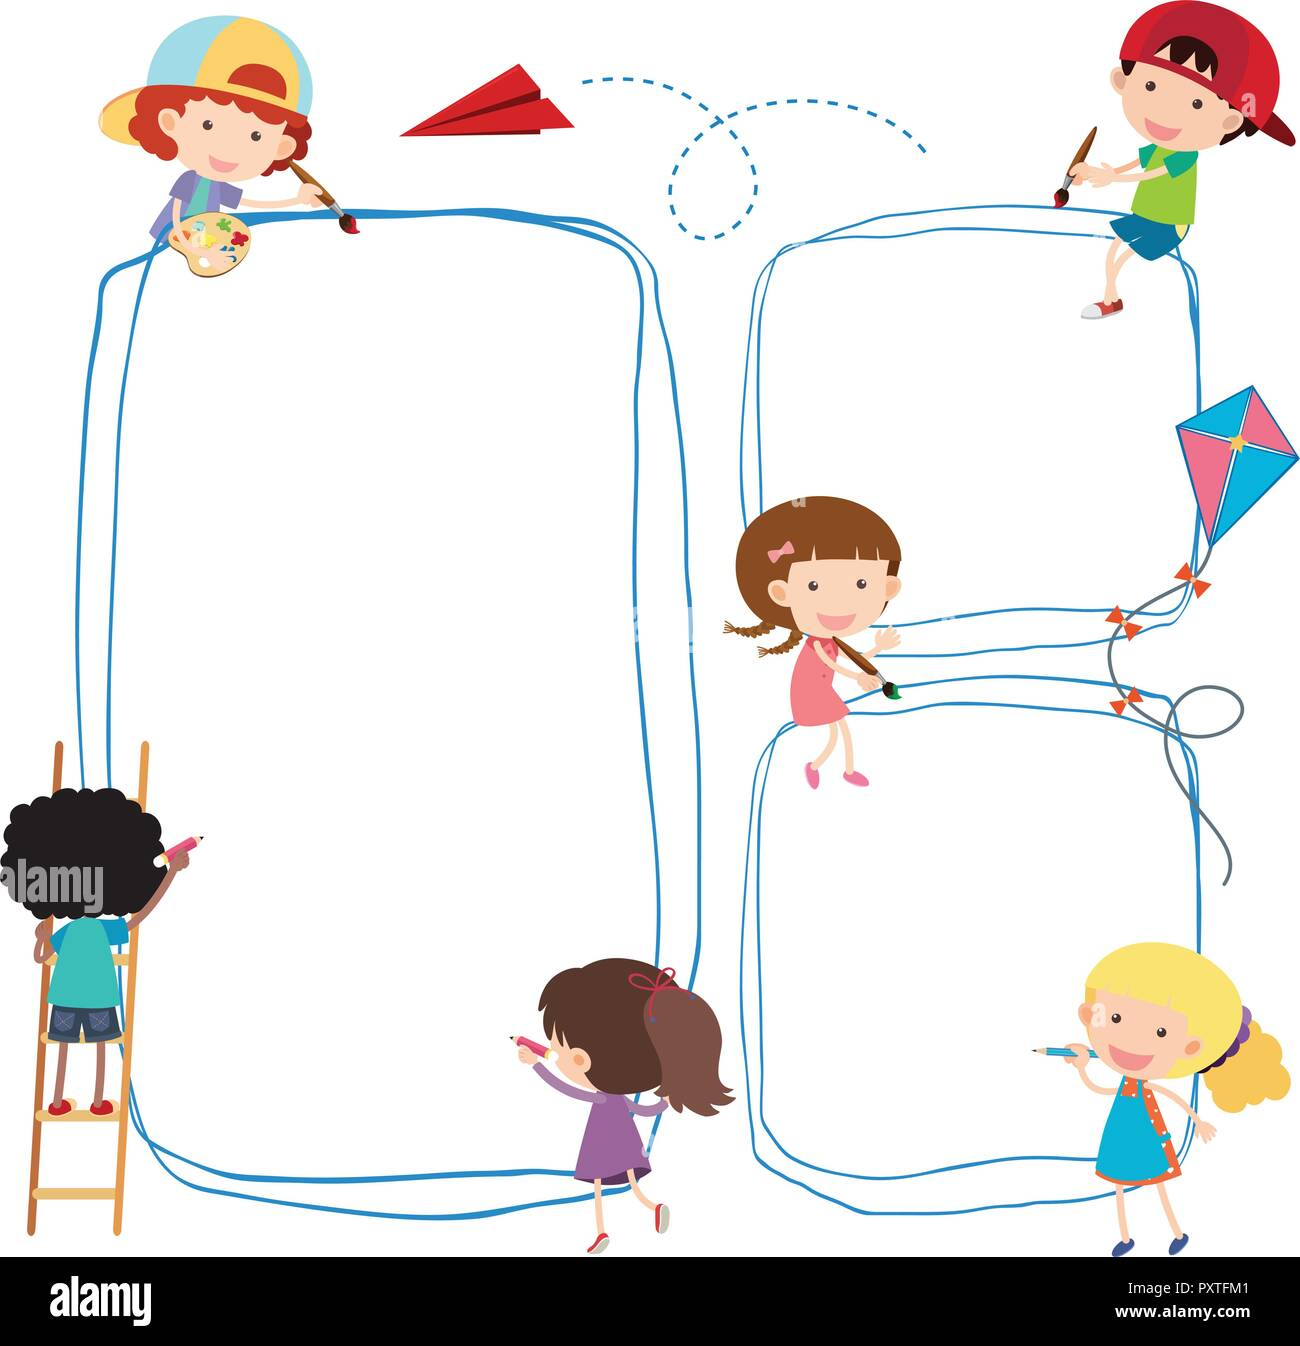 Border Template With Kids Drawing Line Illustration Stock